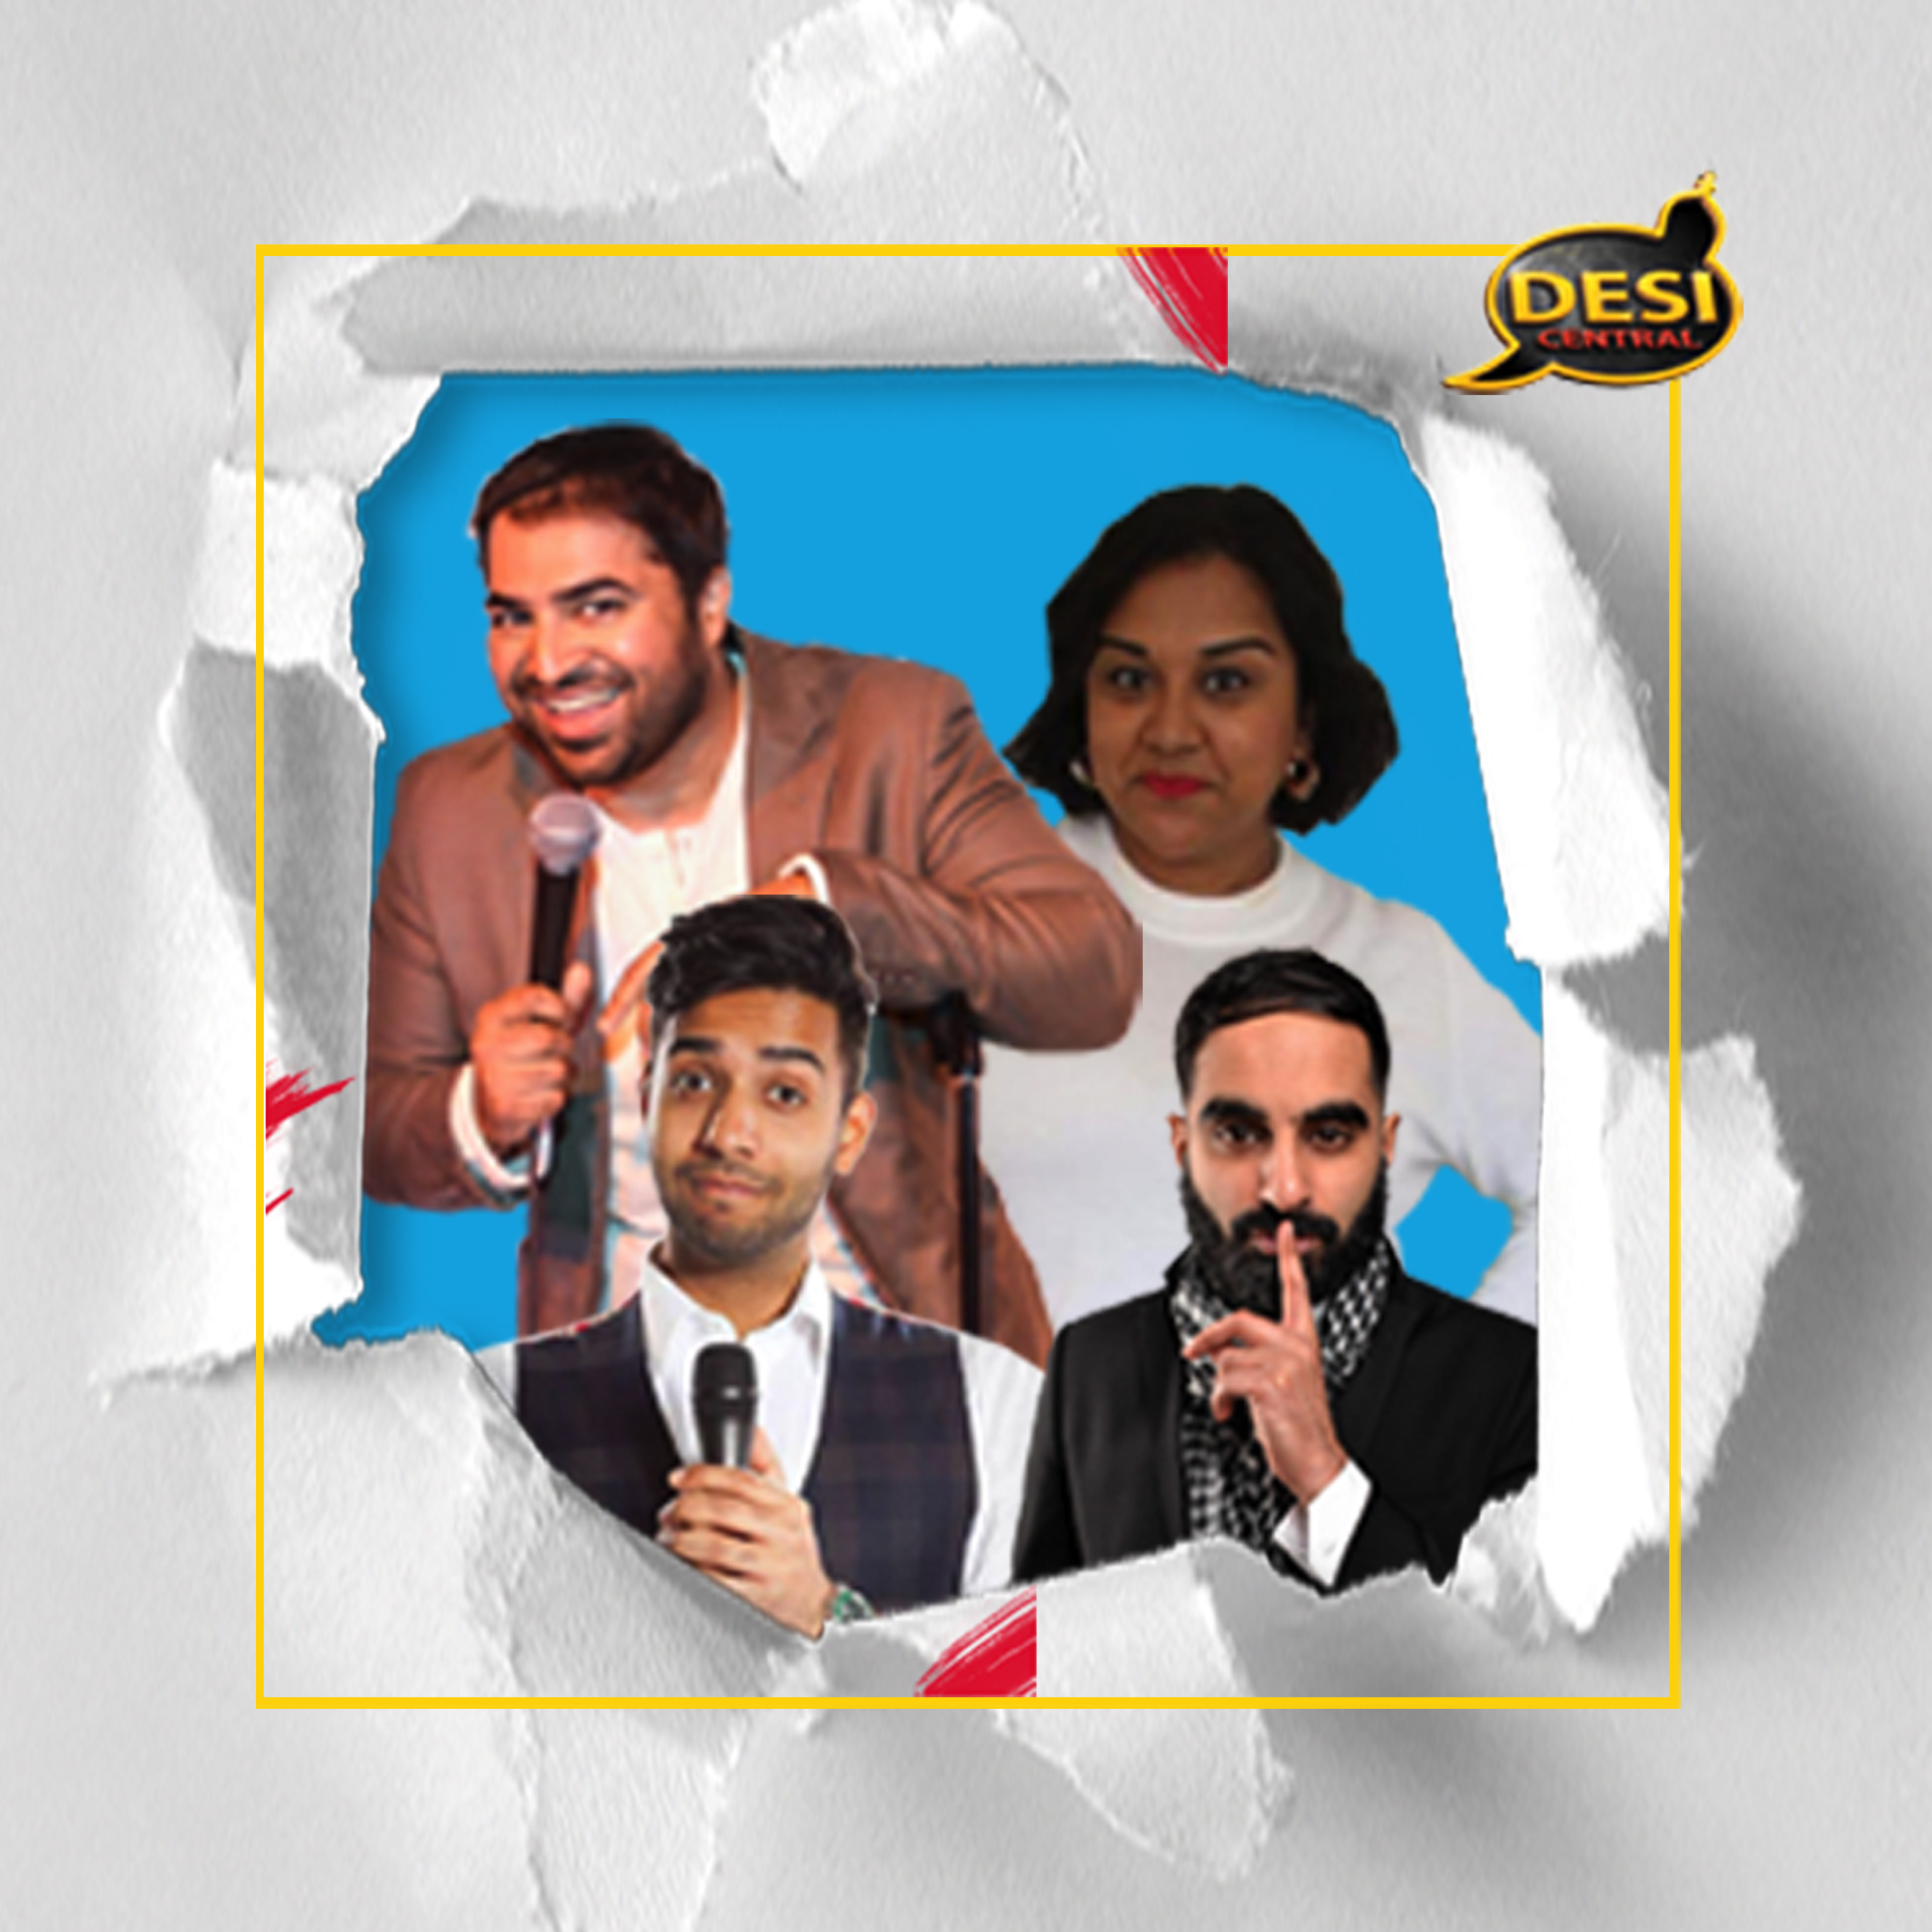 Image for - Desi Central Comedy Night at The Slade Rooms